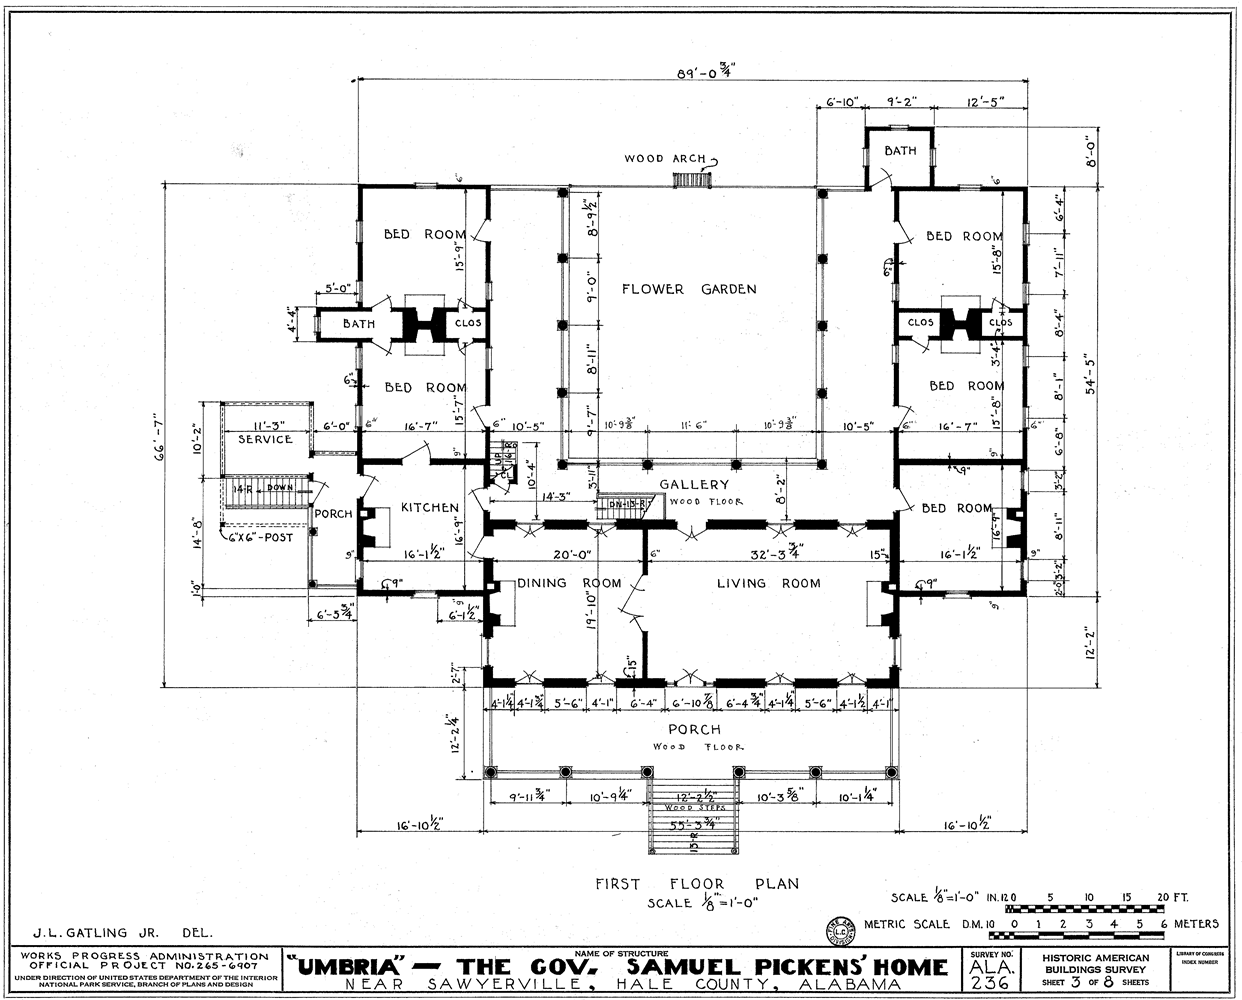 13 Architecture Design Blueprint Images Engineering Design